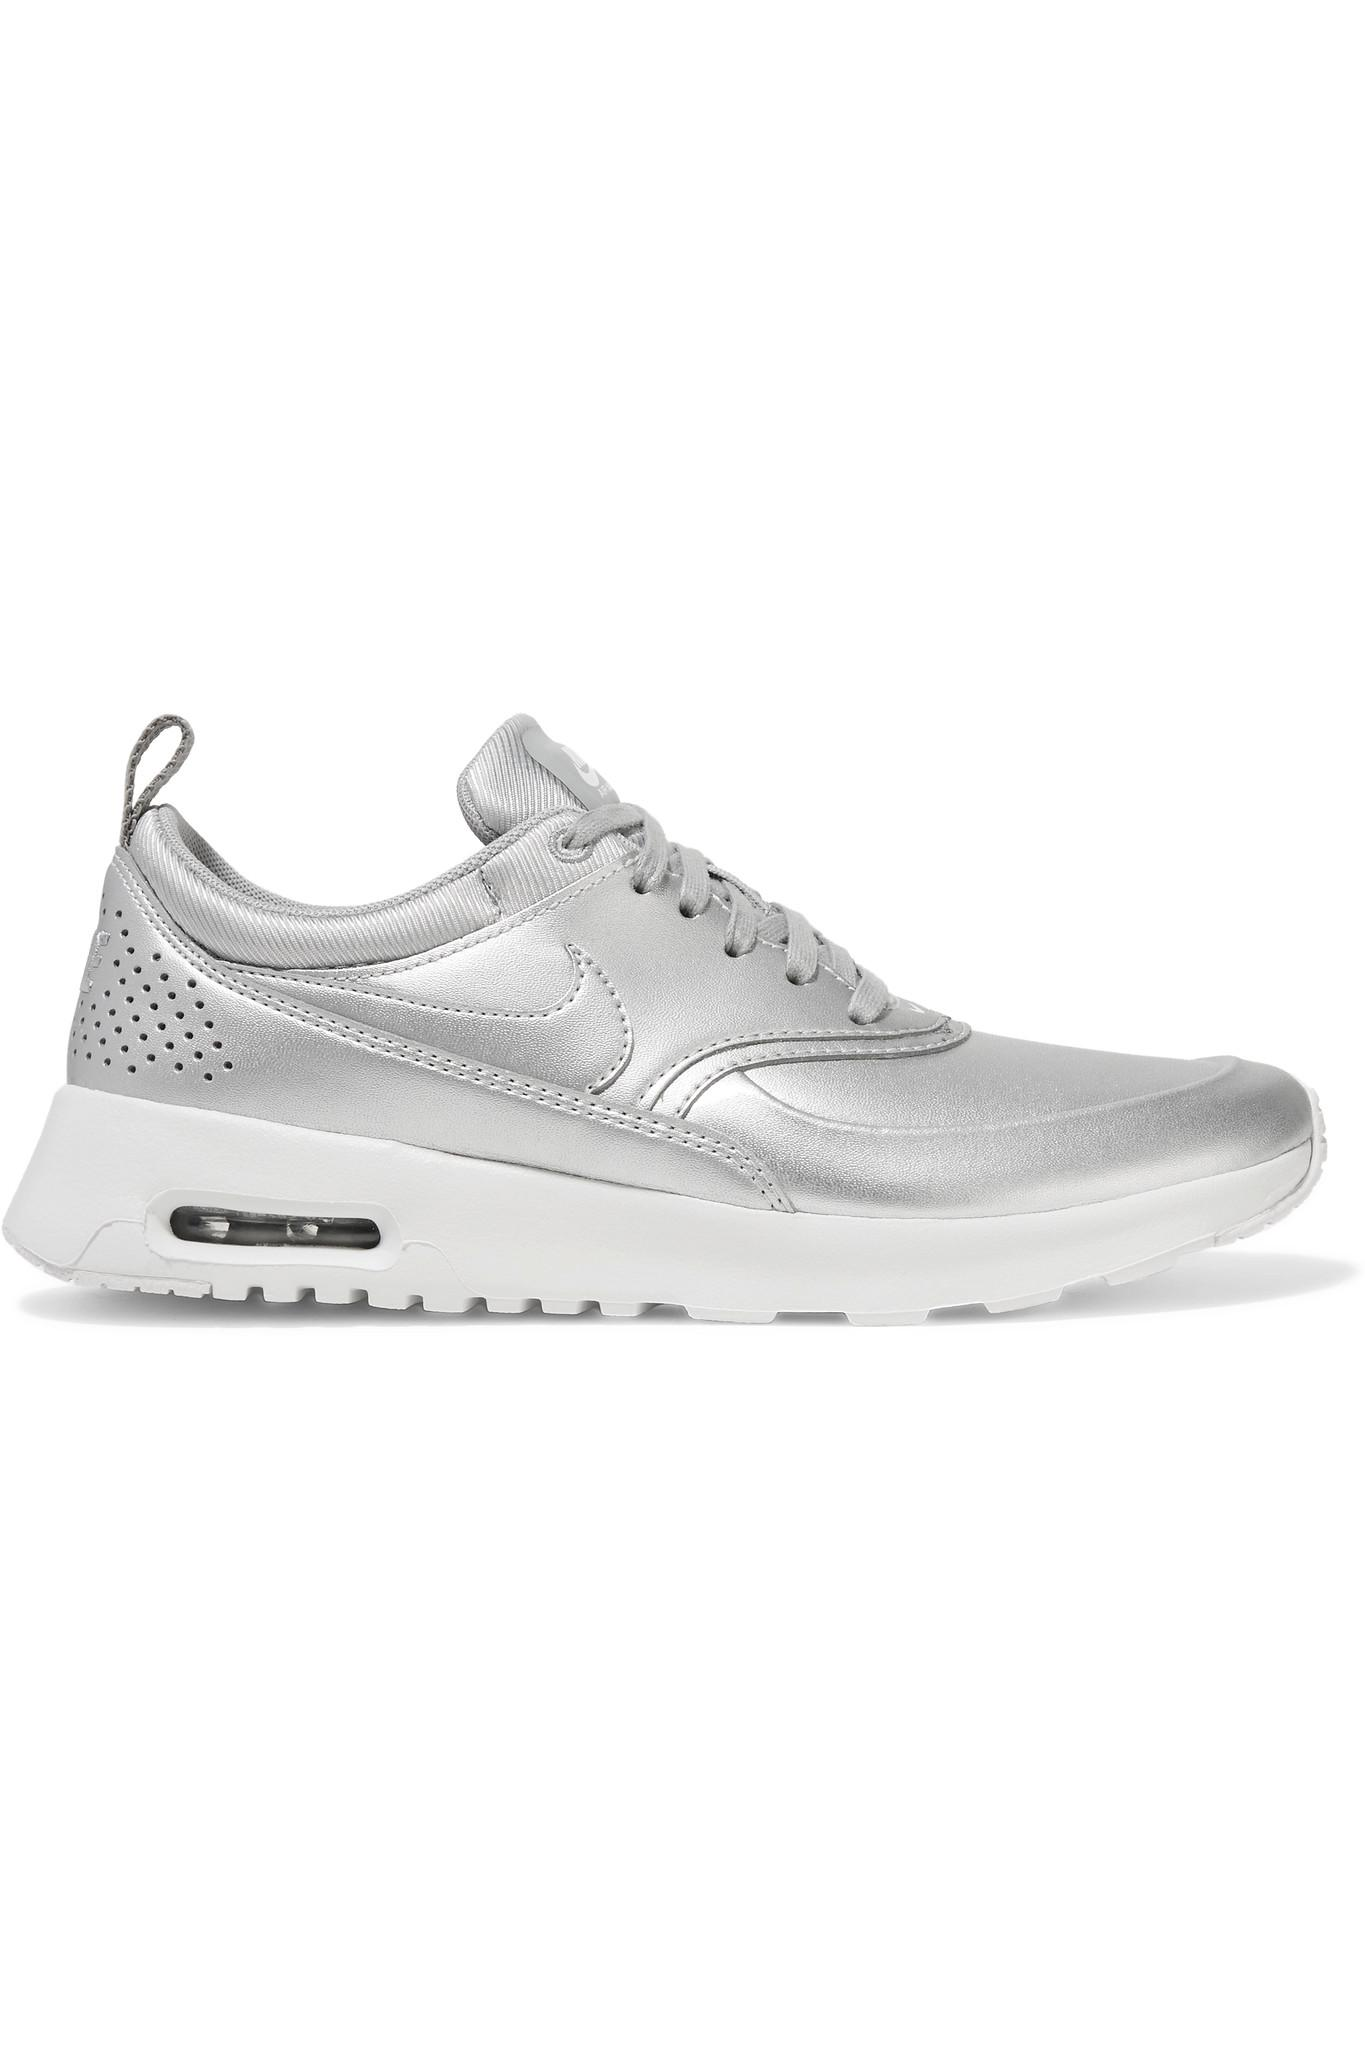 lyst nike air max thea metallic leather sneakers in. Black Bedroom Furniture Sets. Home Design Ideas